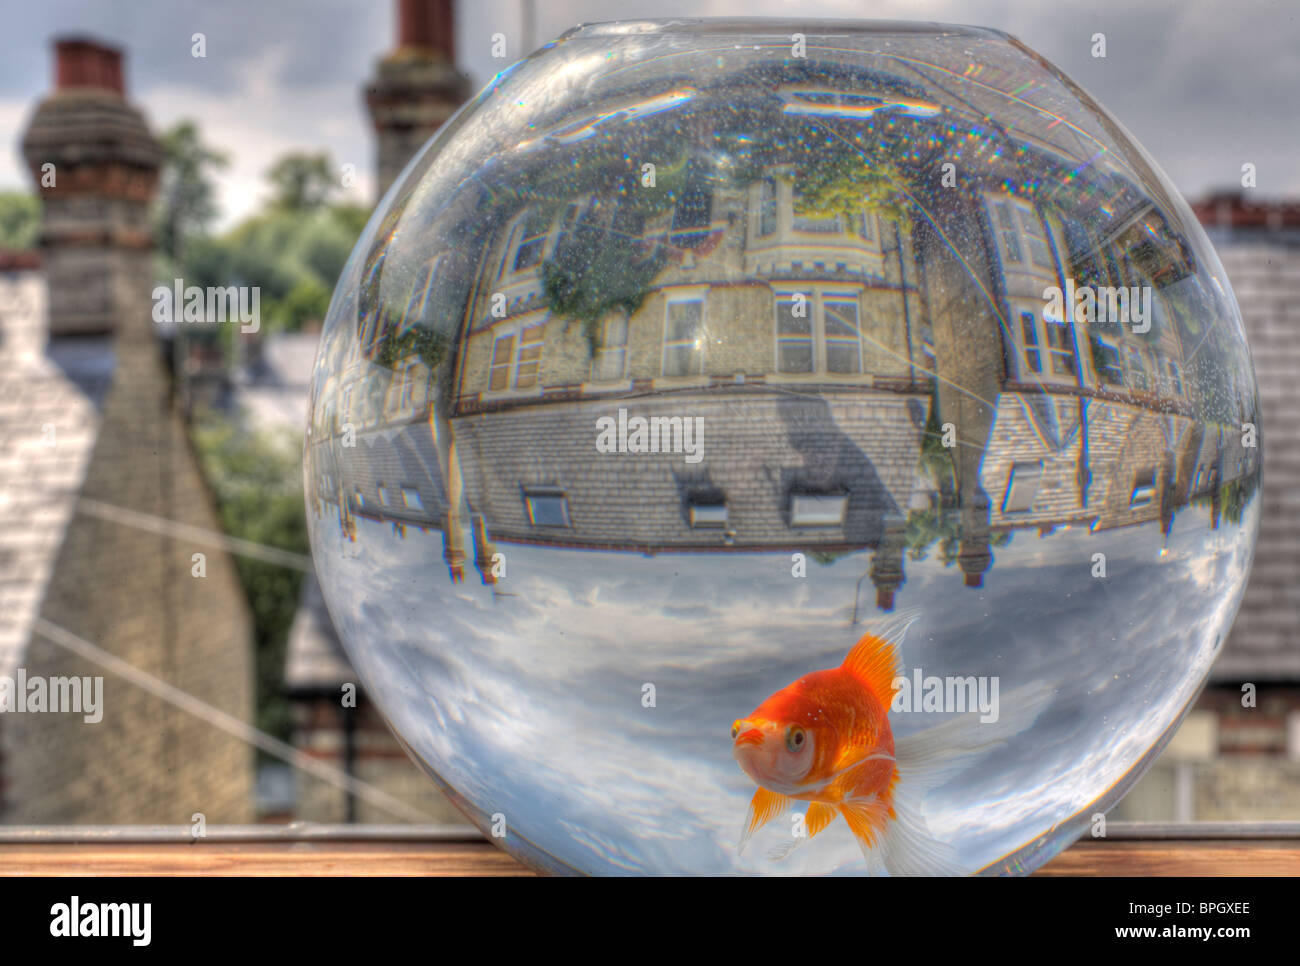 HDR image of a goldfish in a goldfish bowl, overlooking the back streets of Cambridge. - Stock Image